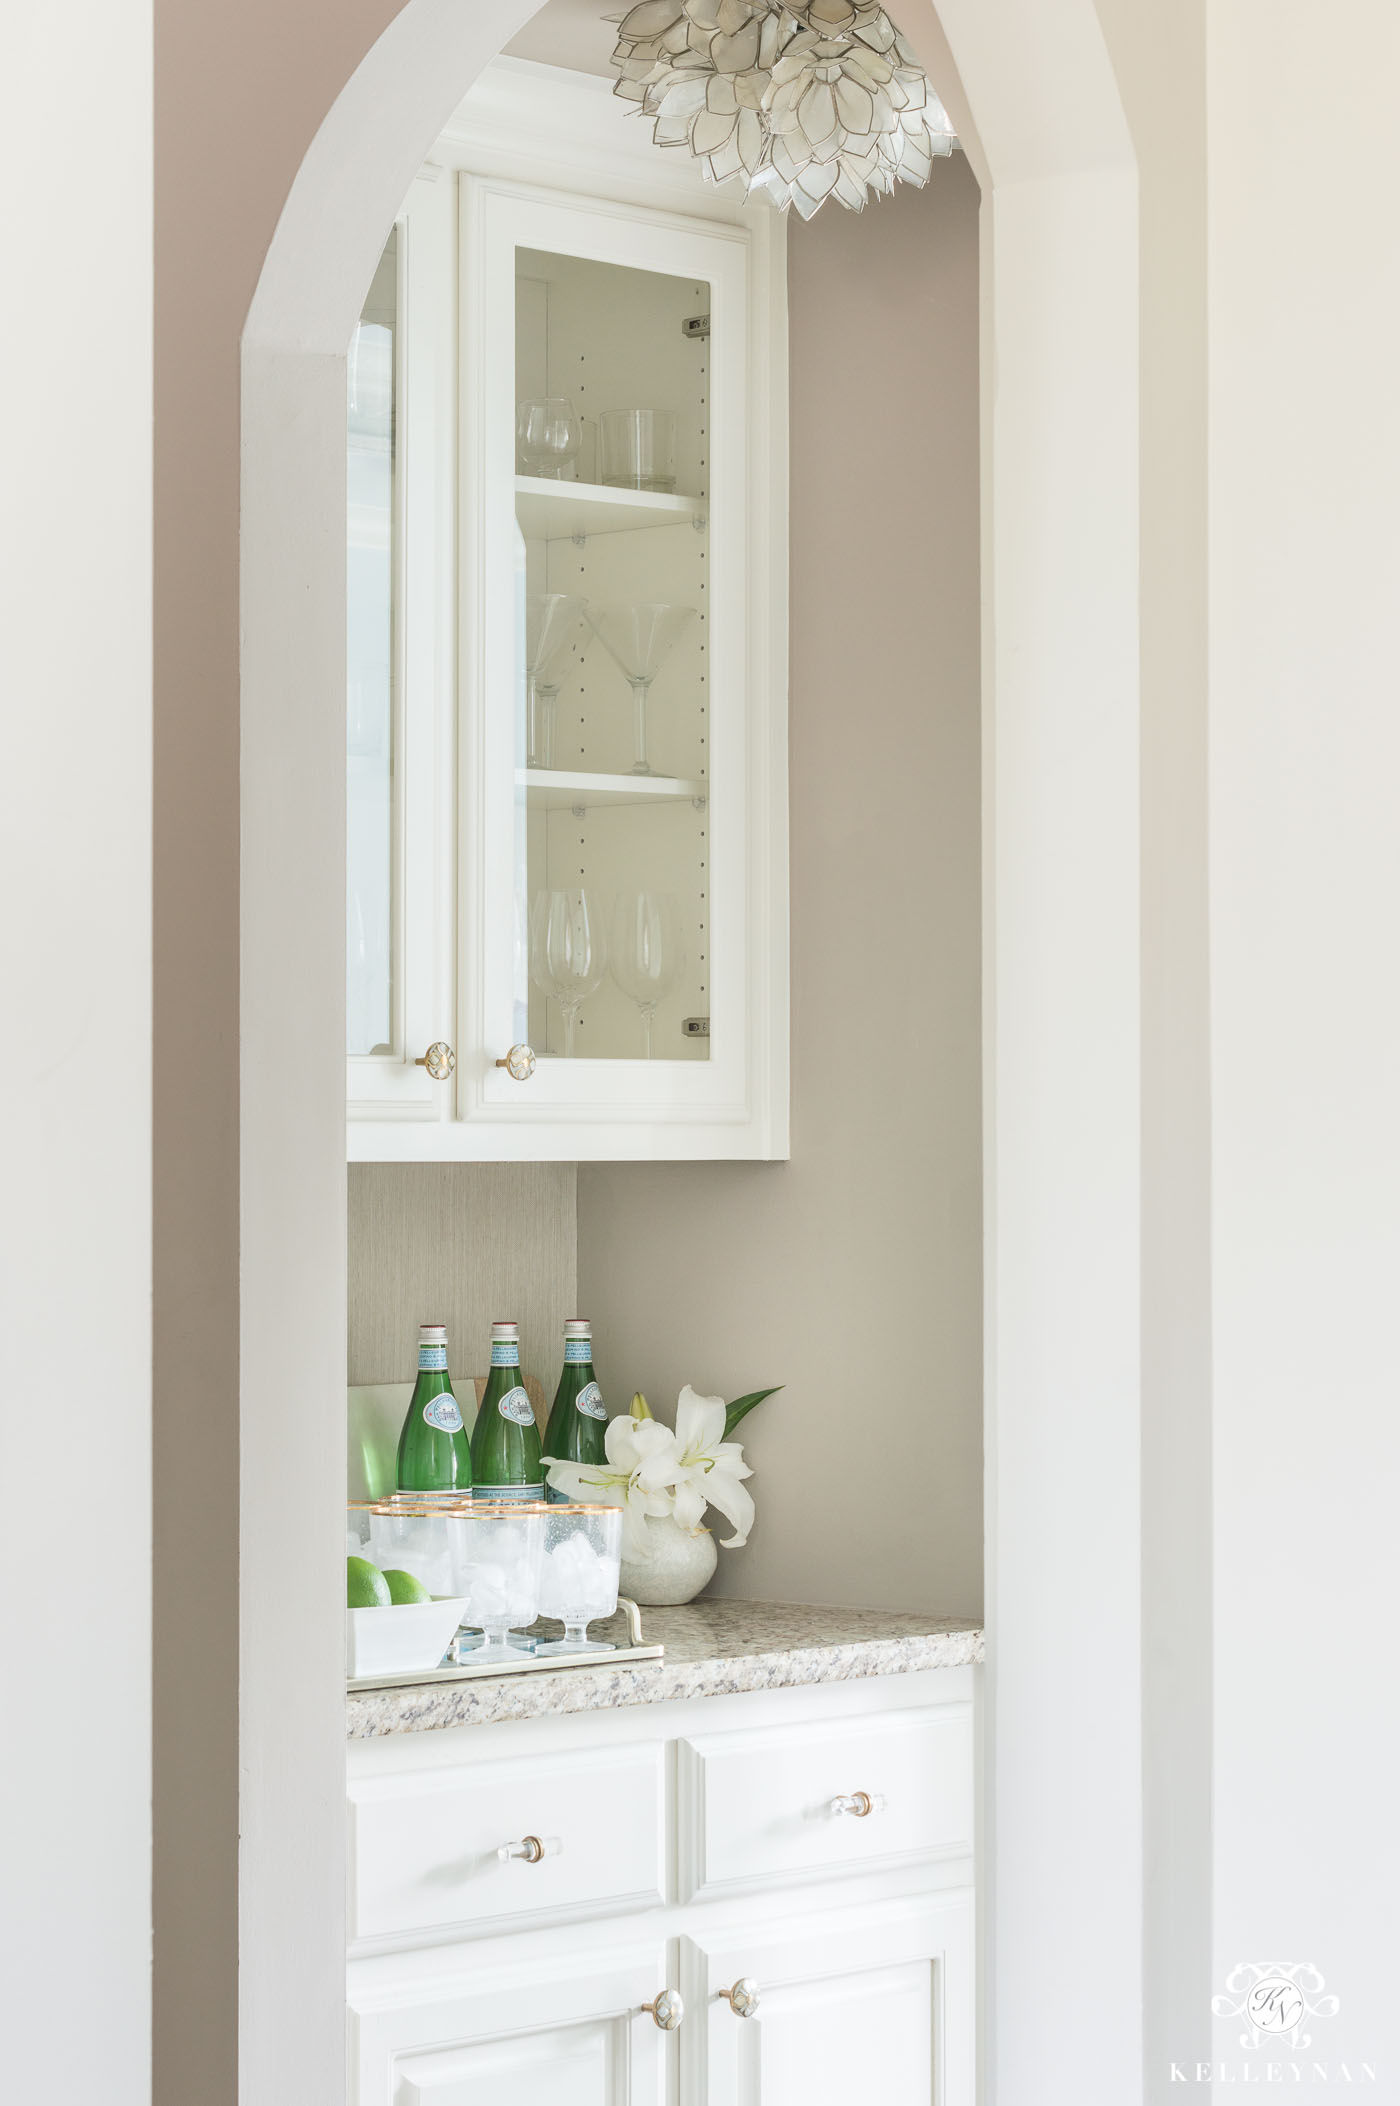 Small Butler's Pantry Design with Glass Cabinet Doors